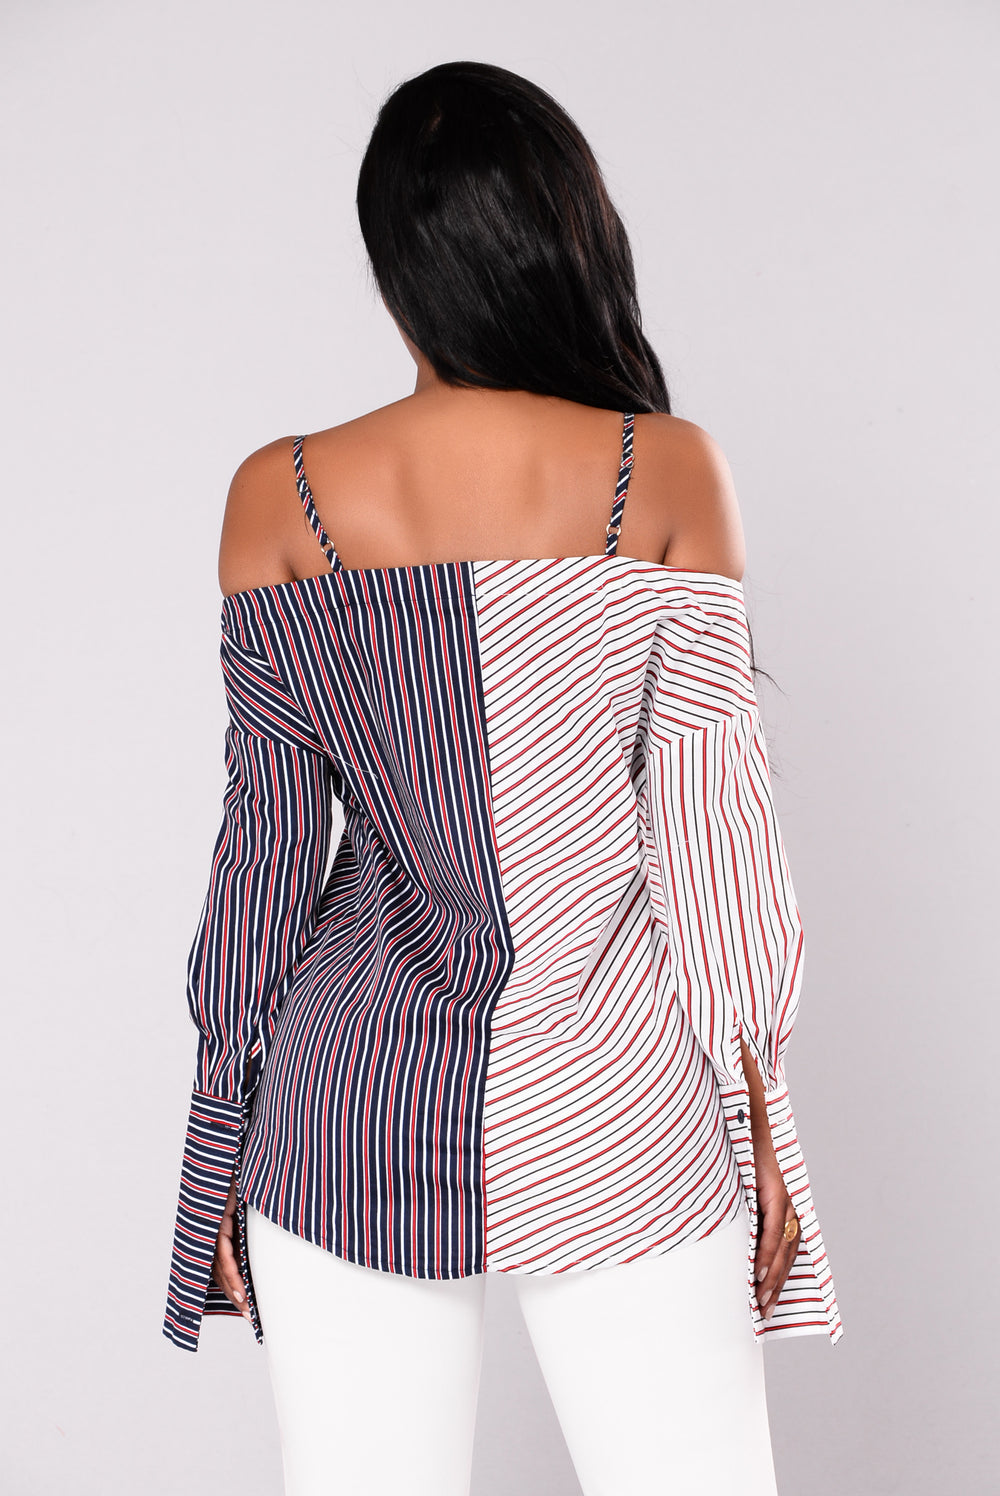 Sign The Lines Striped Top - White/Navy